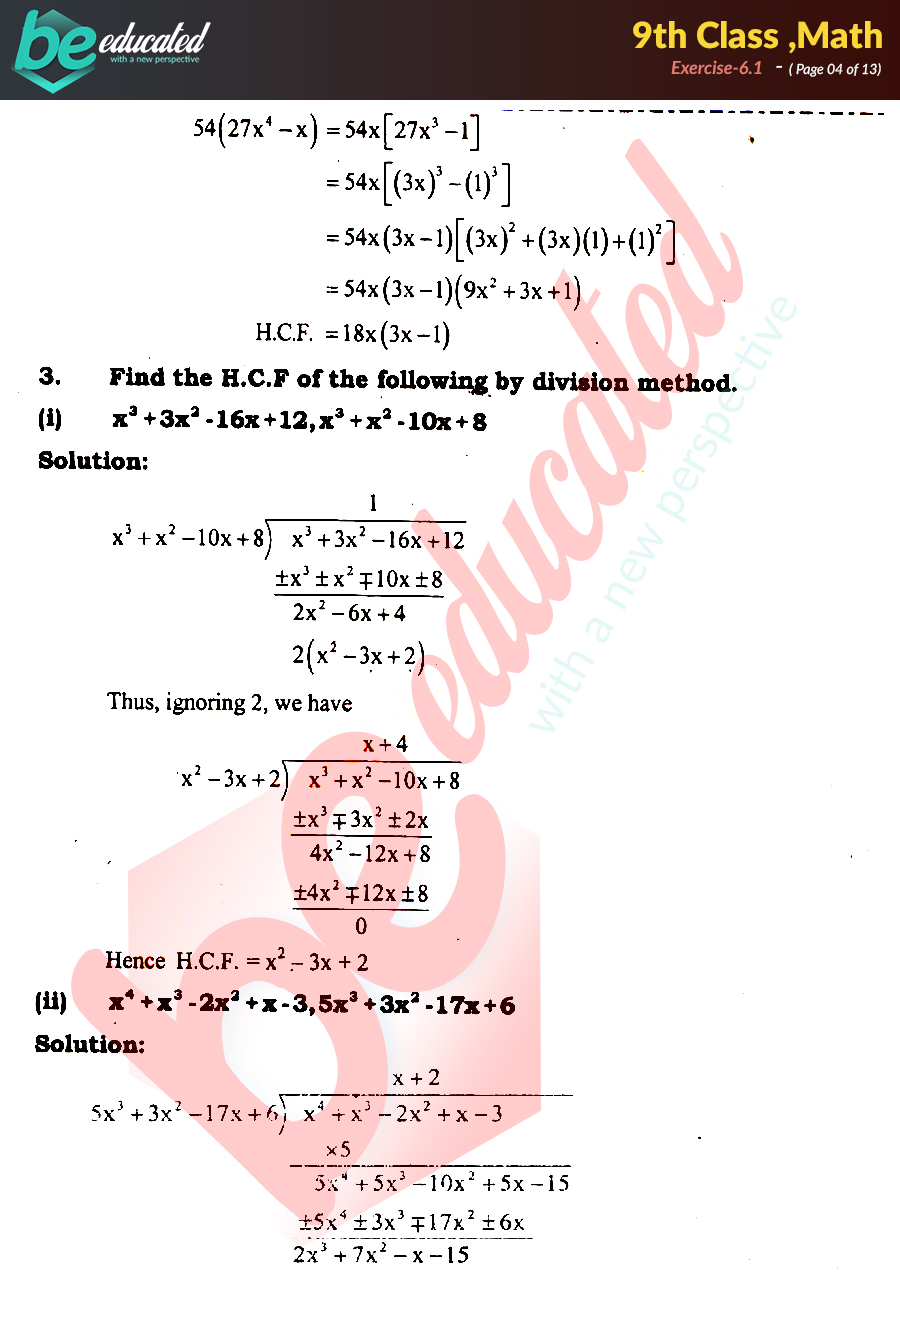 Exercise 6 1 Math 9th Class Notes - Matric Part 1 Notes